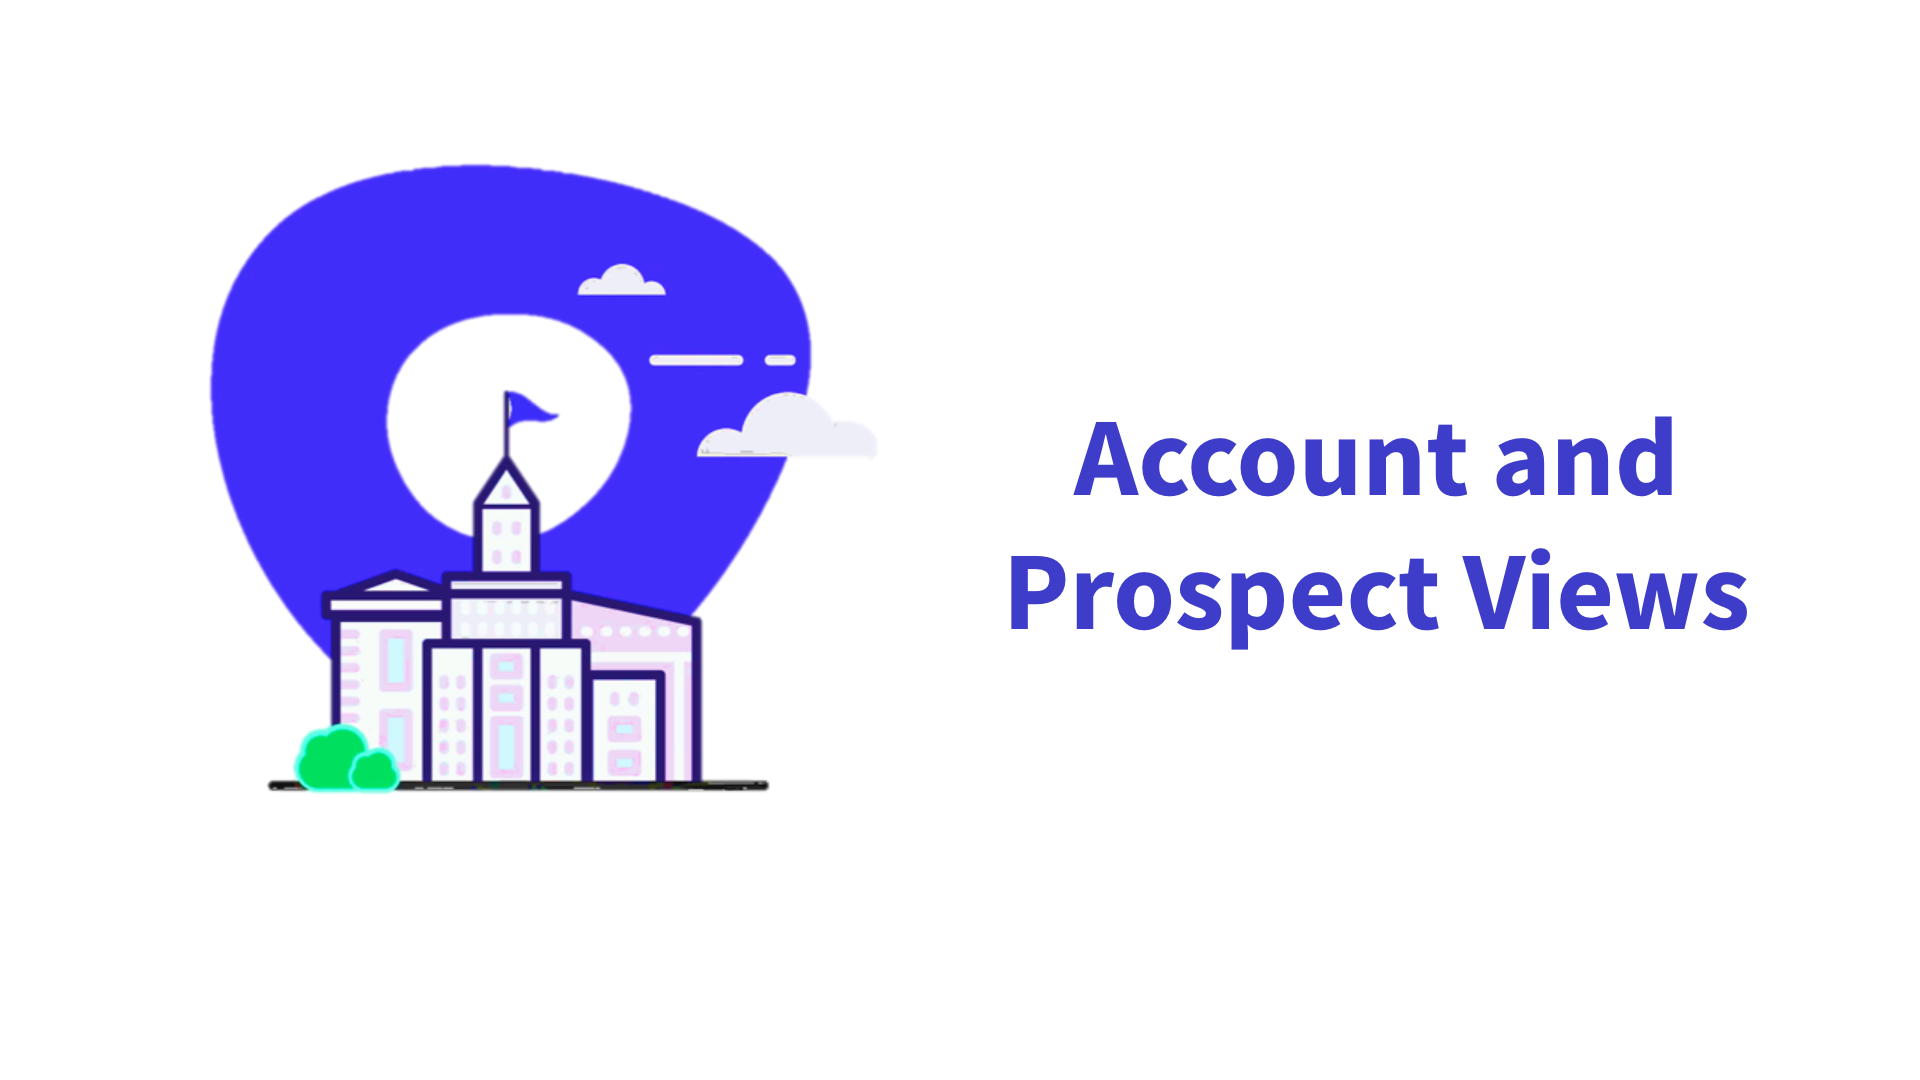 Account and Prospect Views